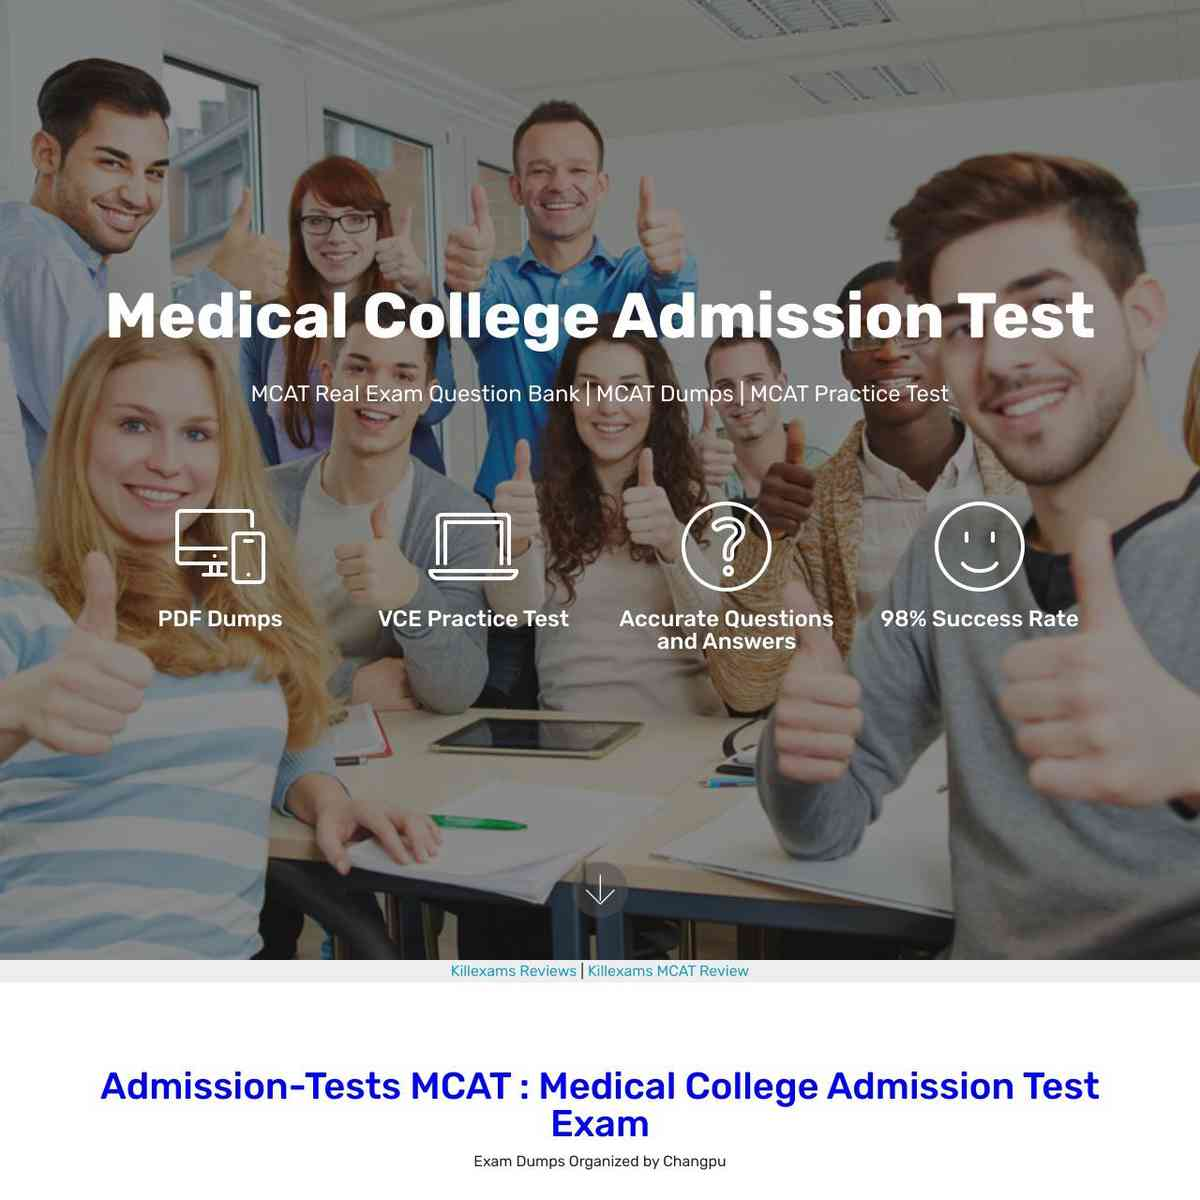 Full MCAT Exam Questions Question bank from killexams